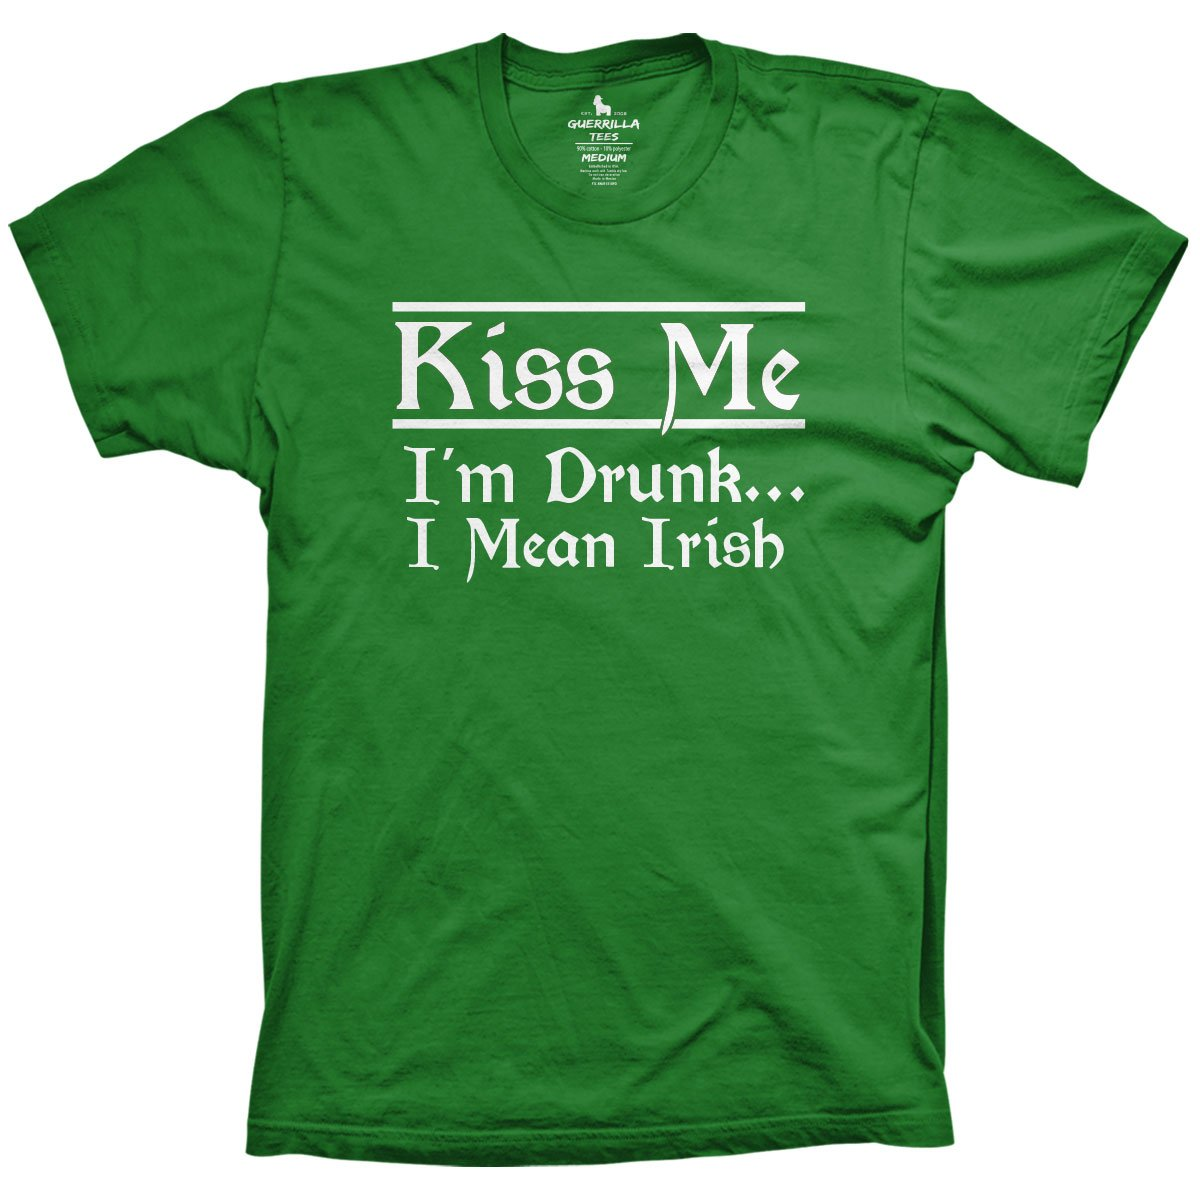 I Mean Irish